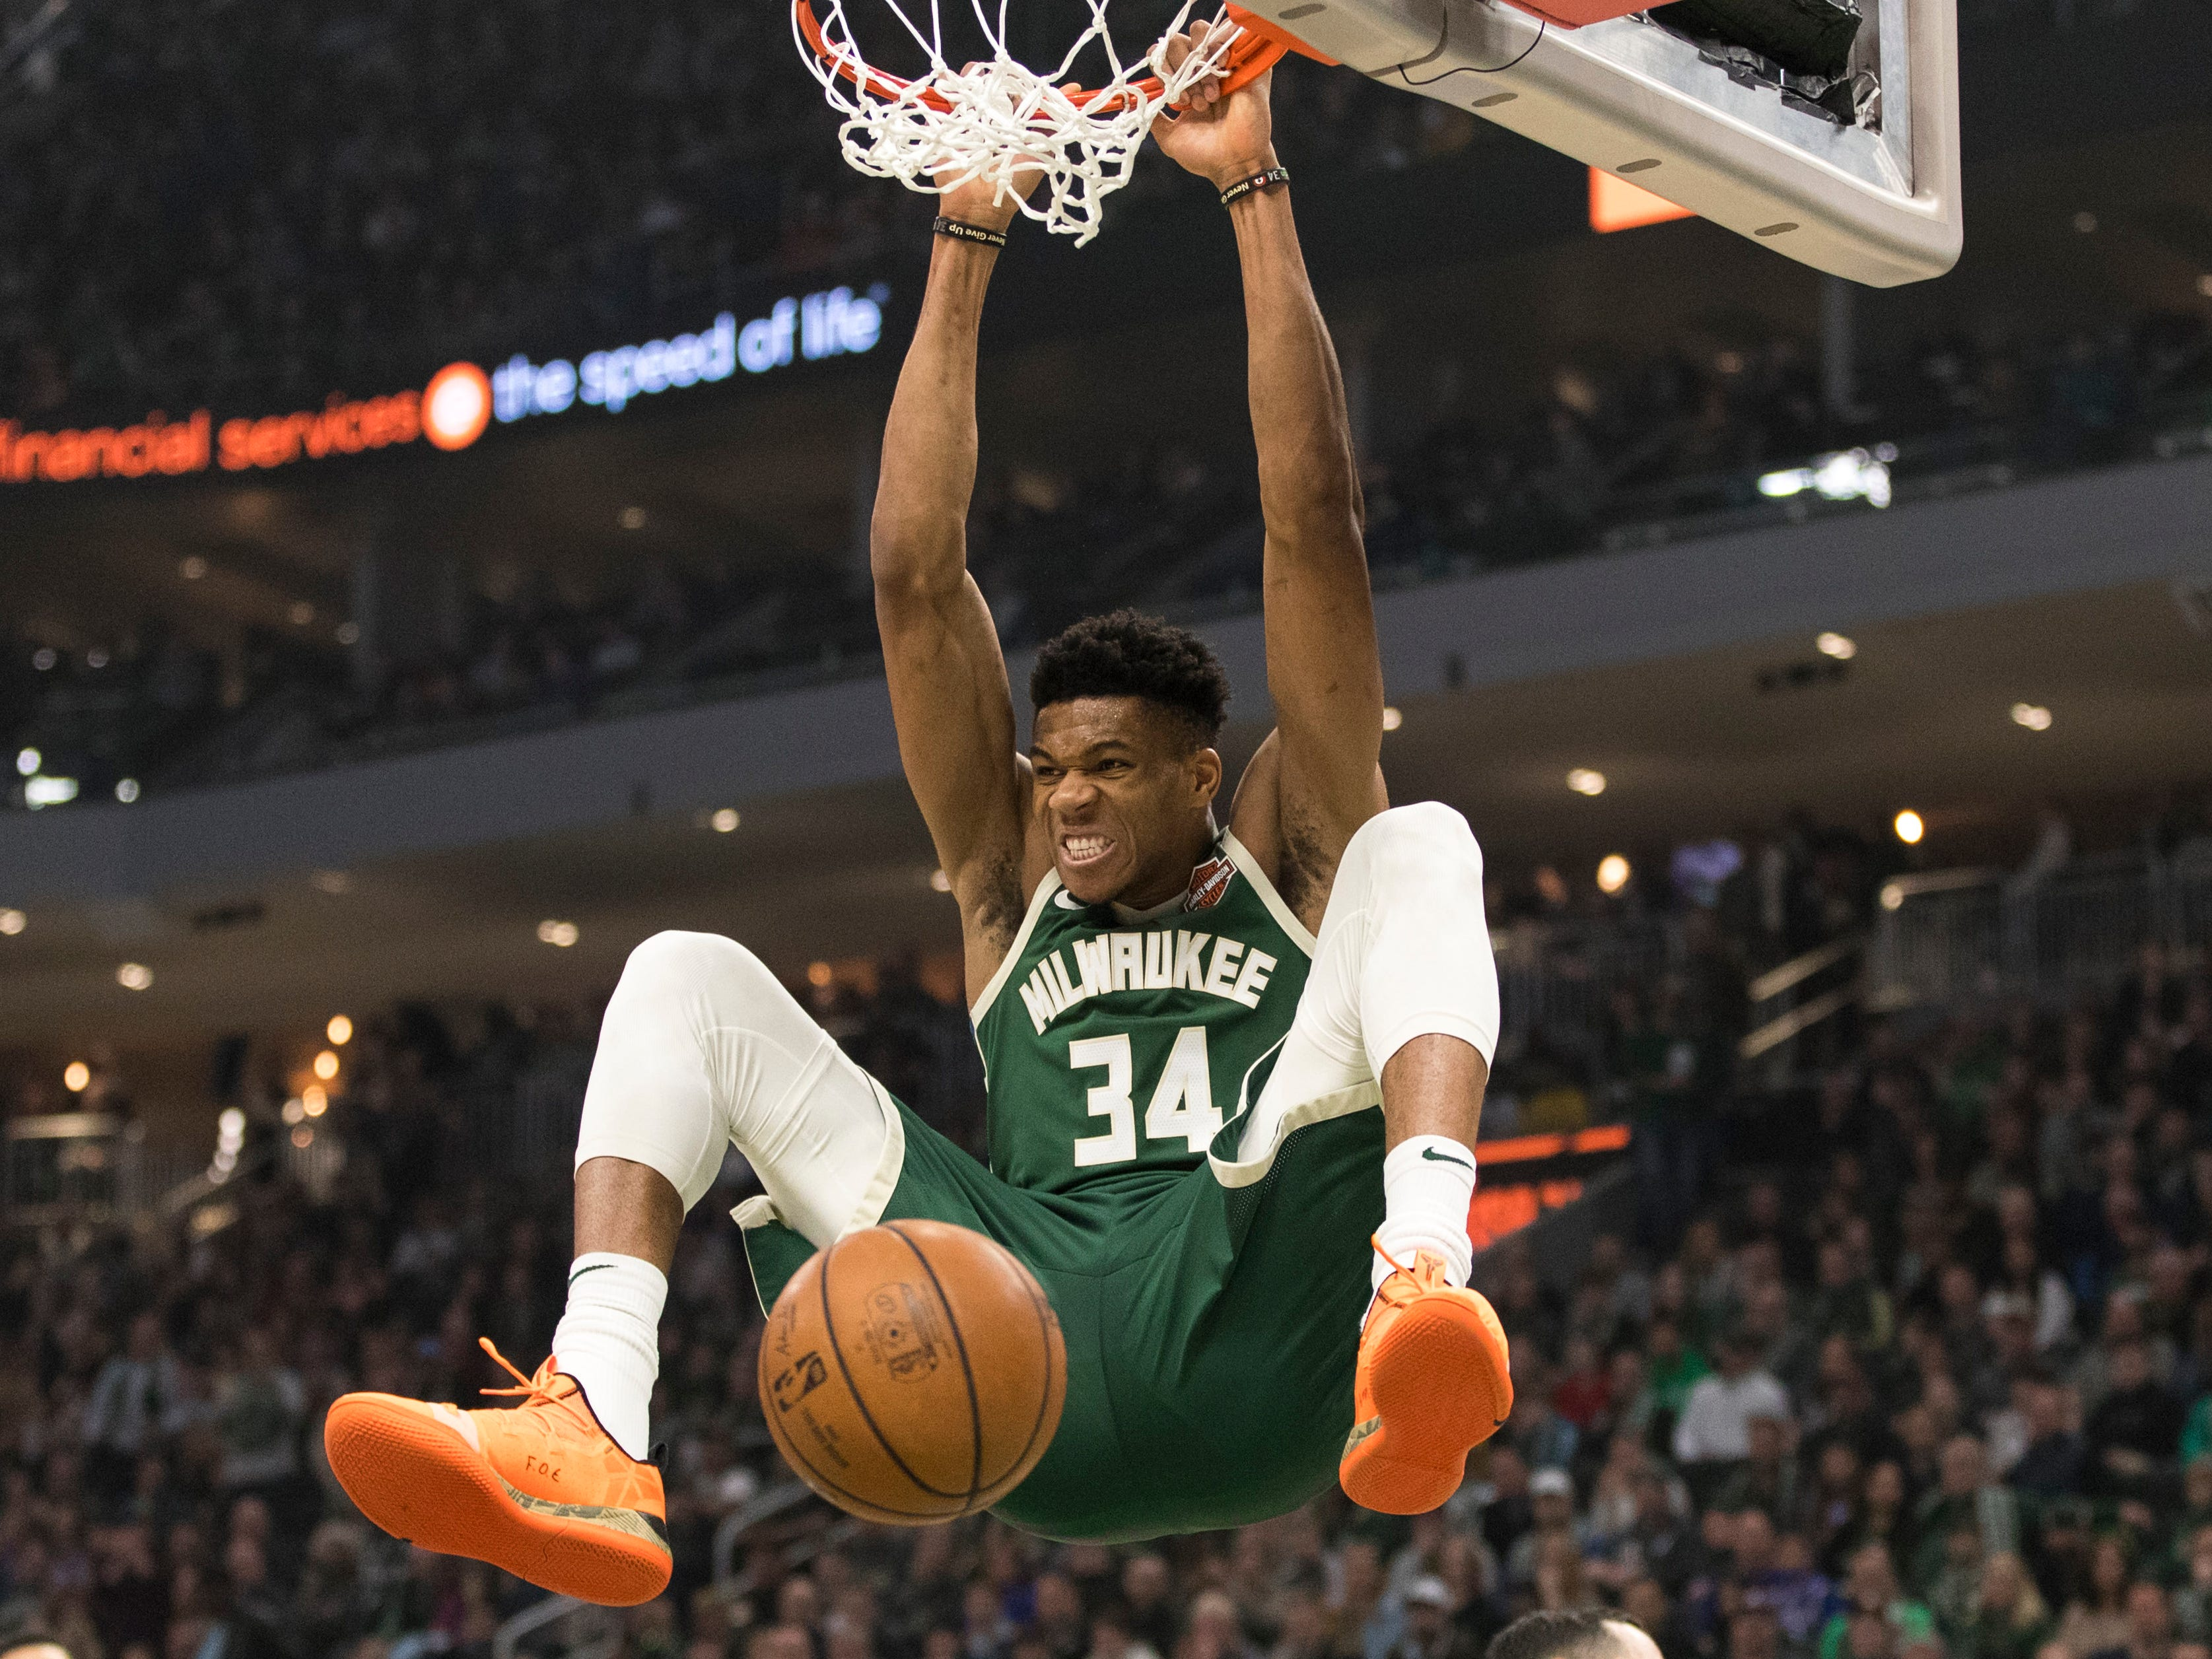 March 17: Bucks star Giannis Antetokounmpo throws down the thunderous two-handed slam against the 76ers.